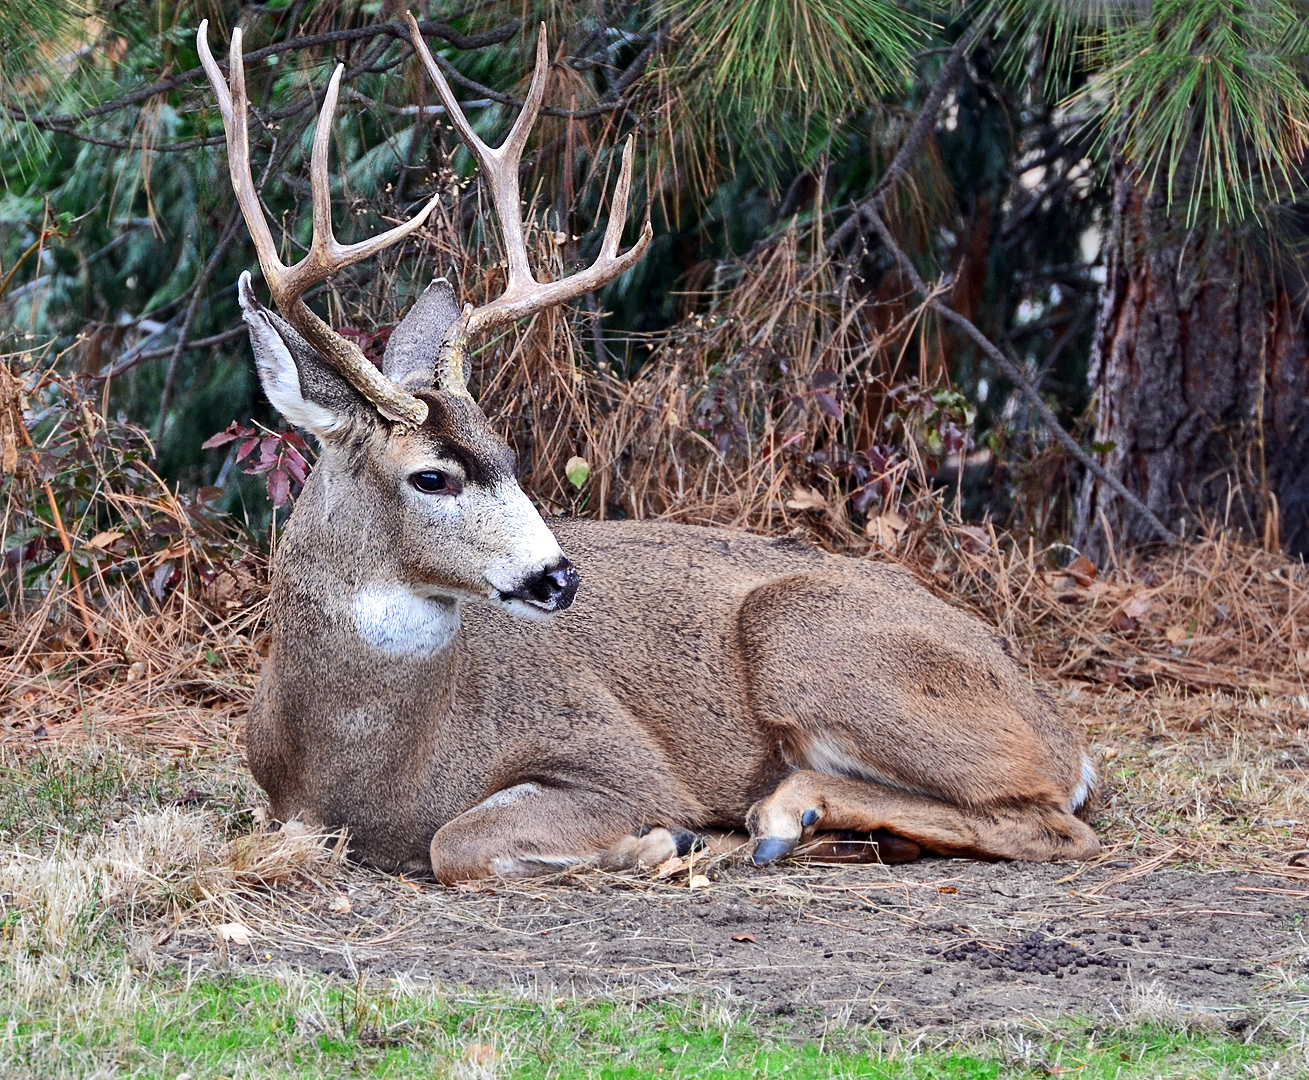 Let the reindeer games begin… « Ashland Daily Photo